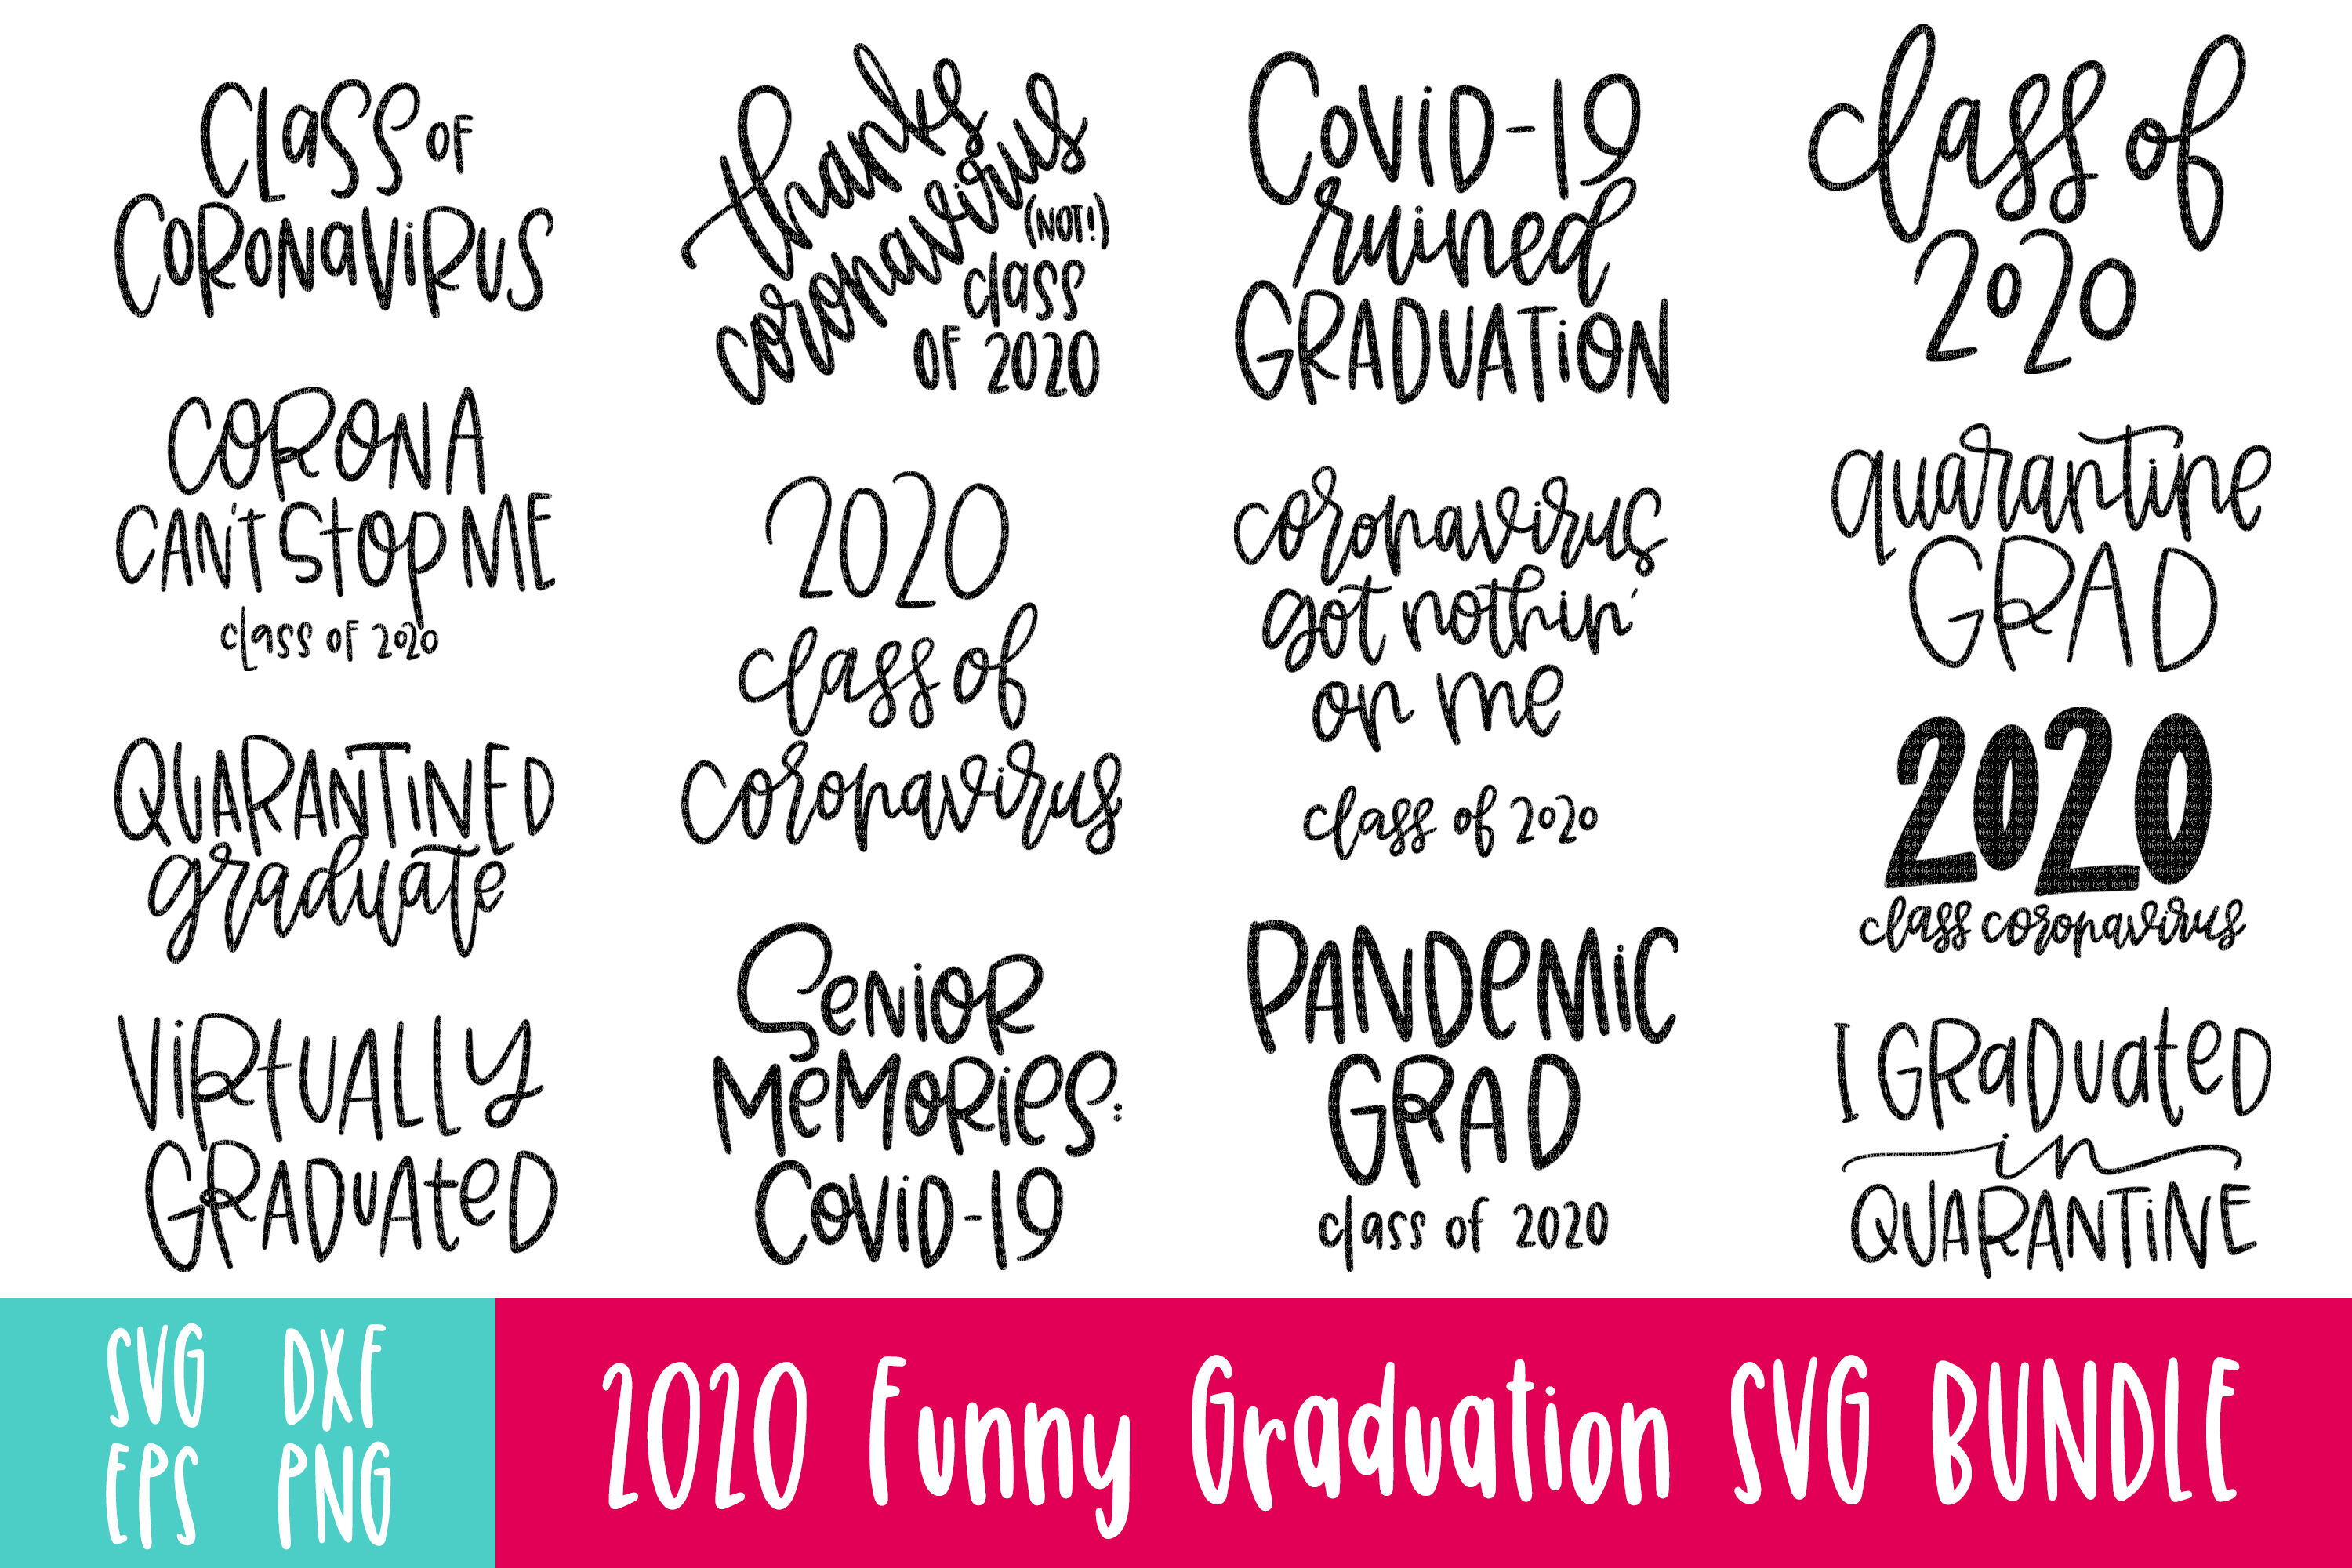 2020 Graduation Quotes Svg Bundle By Affinity Grove